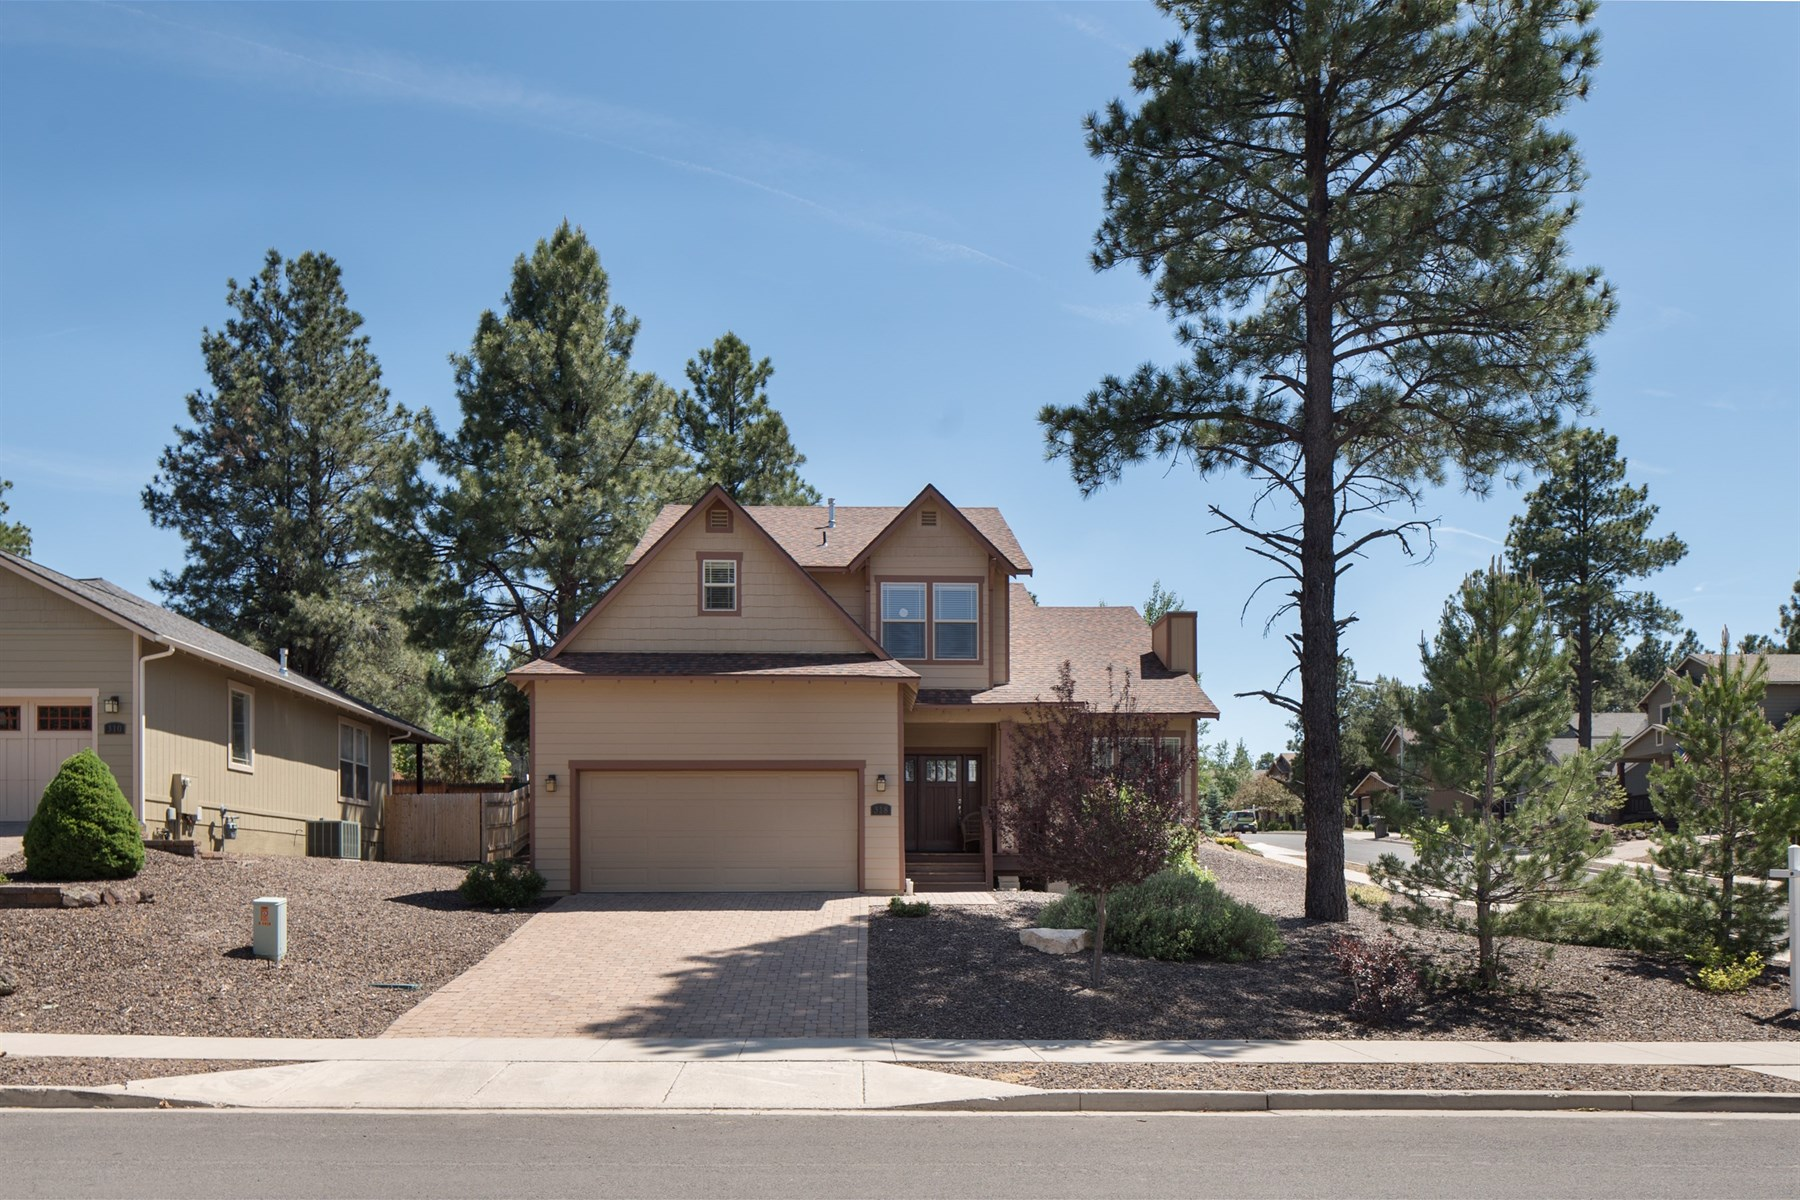 Single Family Home for Sale at Charming home in the Summit at Ponderosa Trails 318 W Beryl Rd Flagstaff, Arizona, 86005 United States